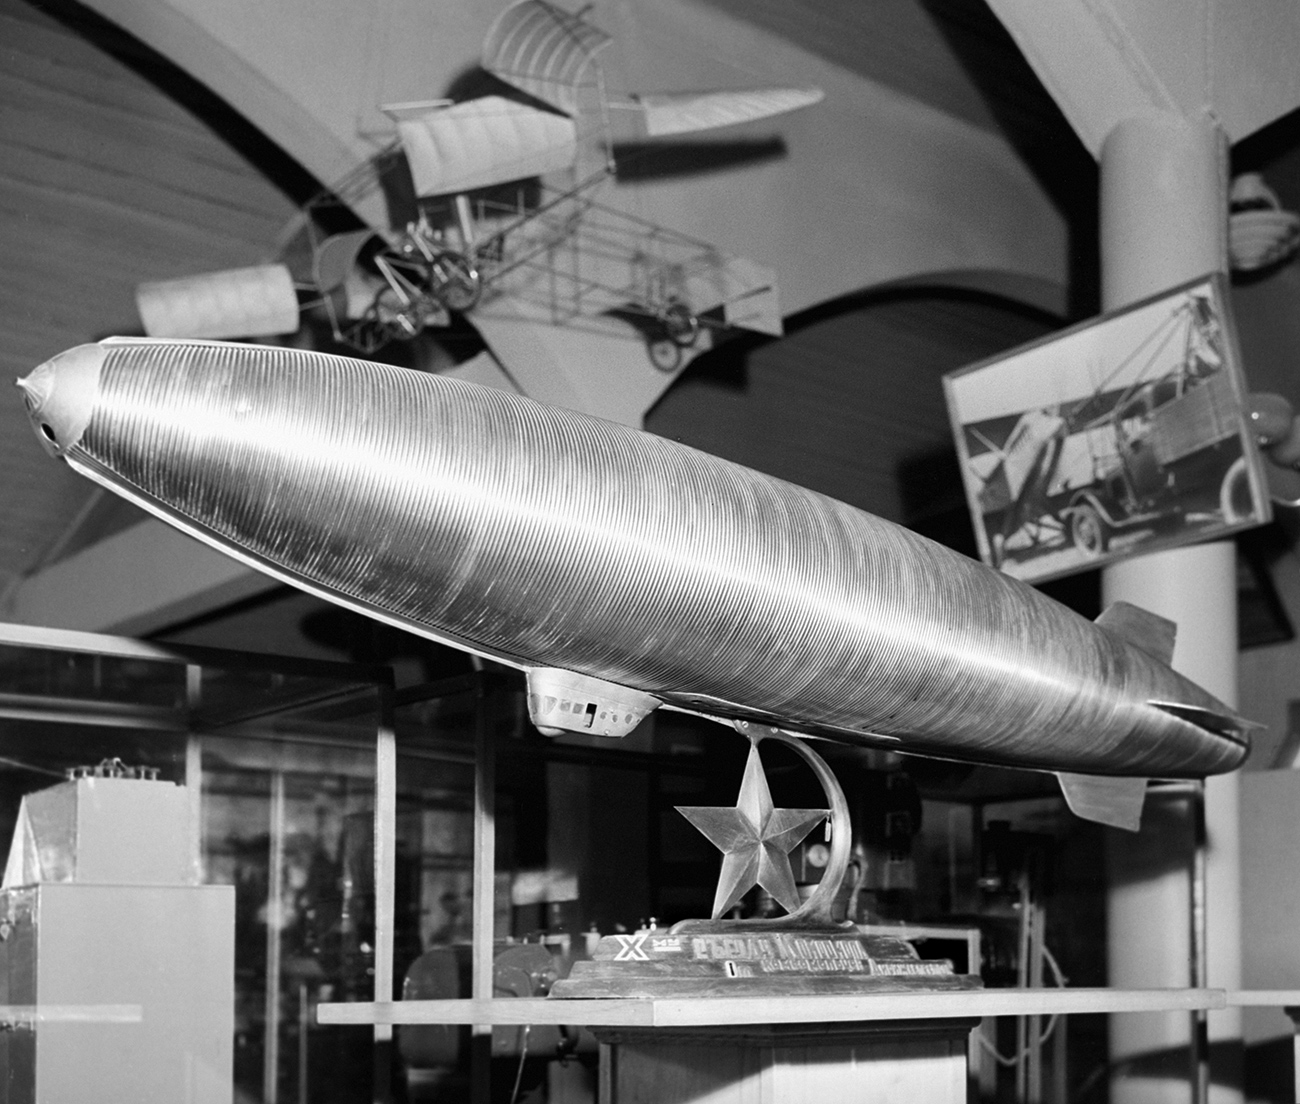 Model of all-metal dirigible designed by Konstantin Tsiolkovsky [1857-1935] on display at the Museum of the Yury Gagarin Order of the Red Banner and Order of Kutuzov Air Force Academy.